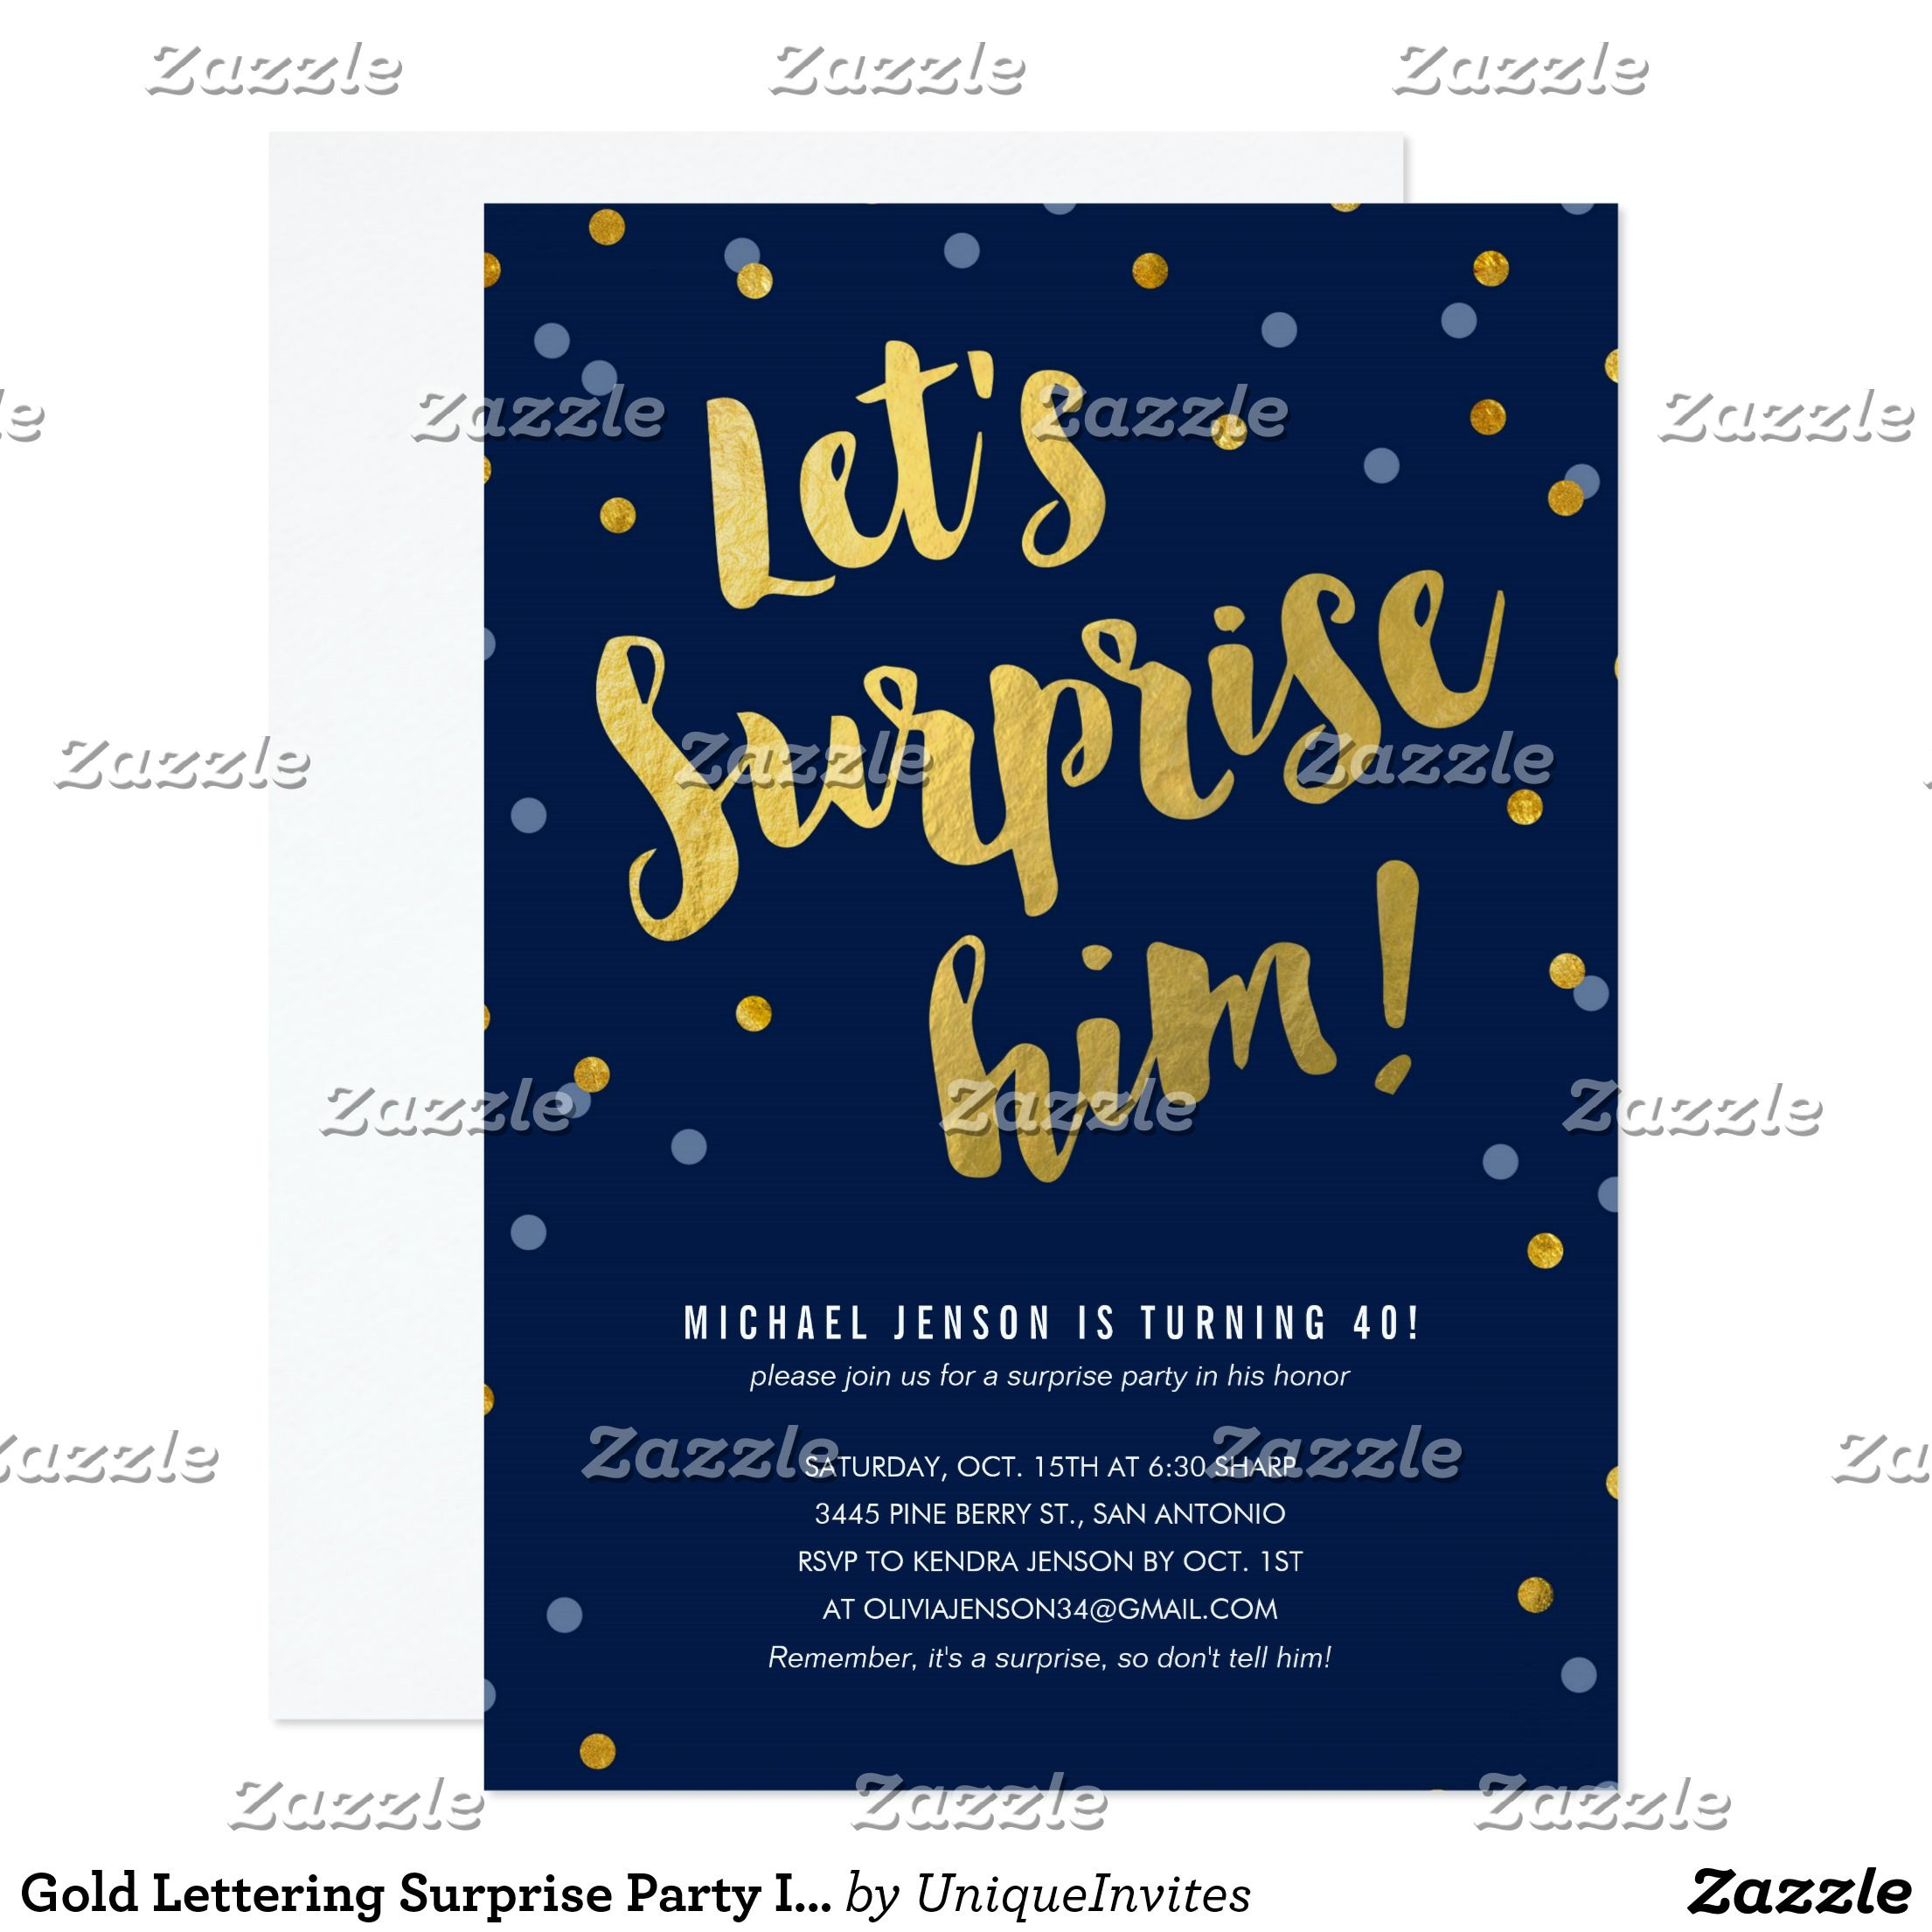 Gold Lettering Surprise Party Invitations for Him | Nathan\'s Dirty ...